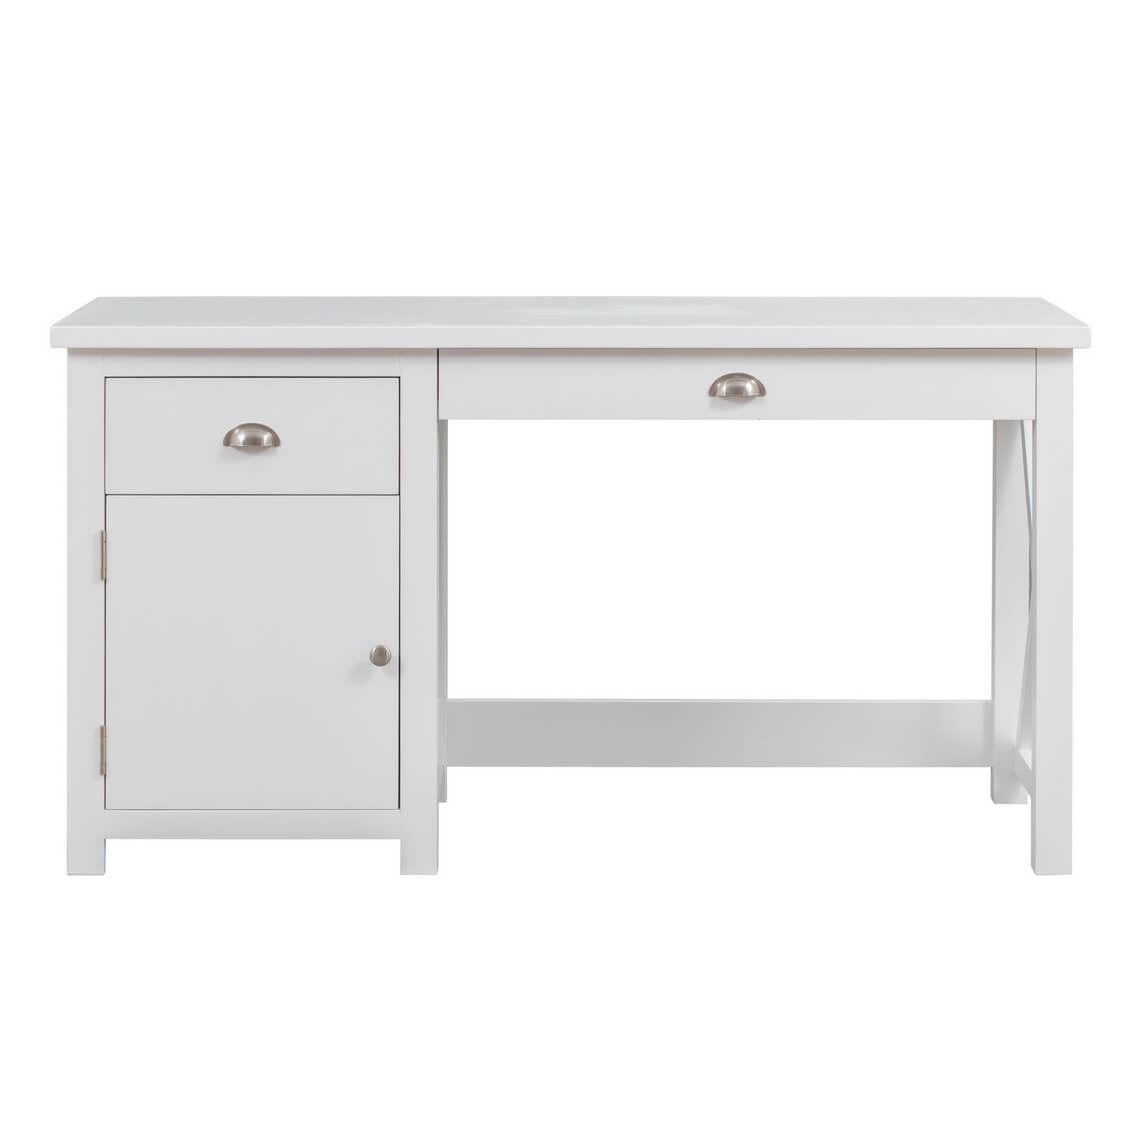 East Port Desk 2 Drawer Size W 140cm x D 55cm x H 76cm in Crisp White Solid Acacia/Wood/Metal Freedom by Freedom, a Desks for sale on Style Sourcebook